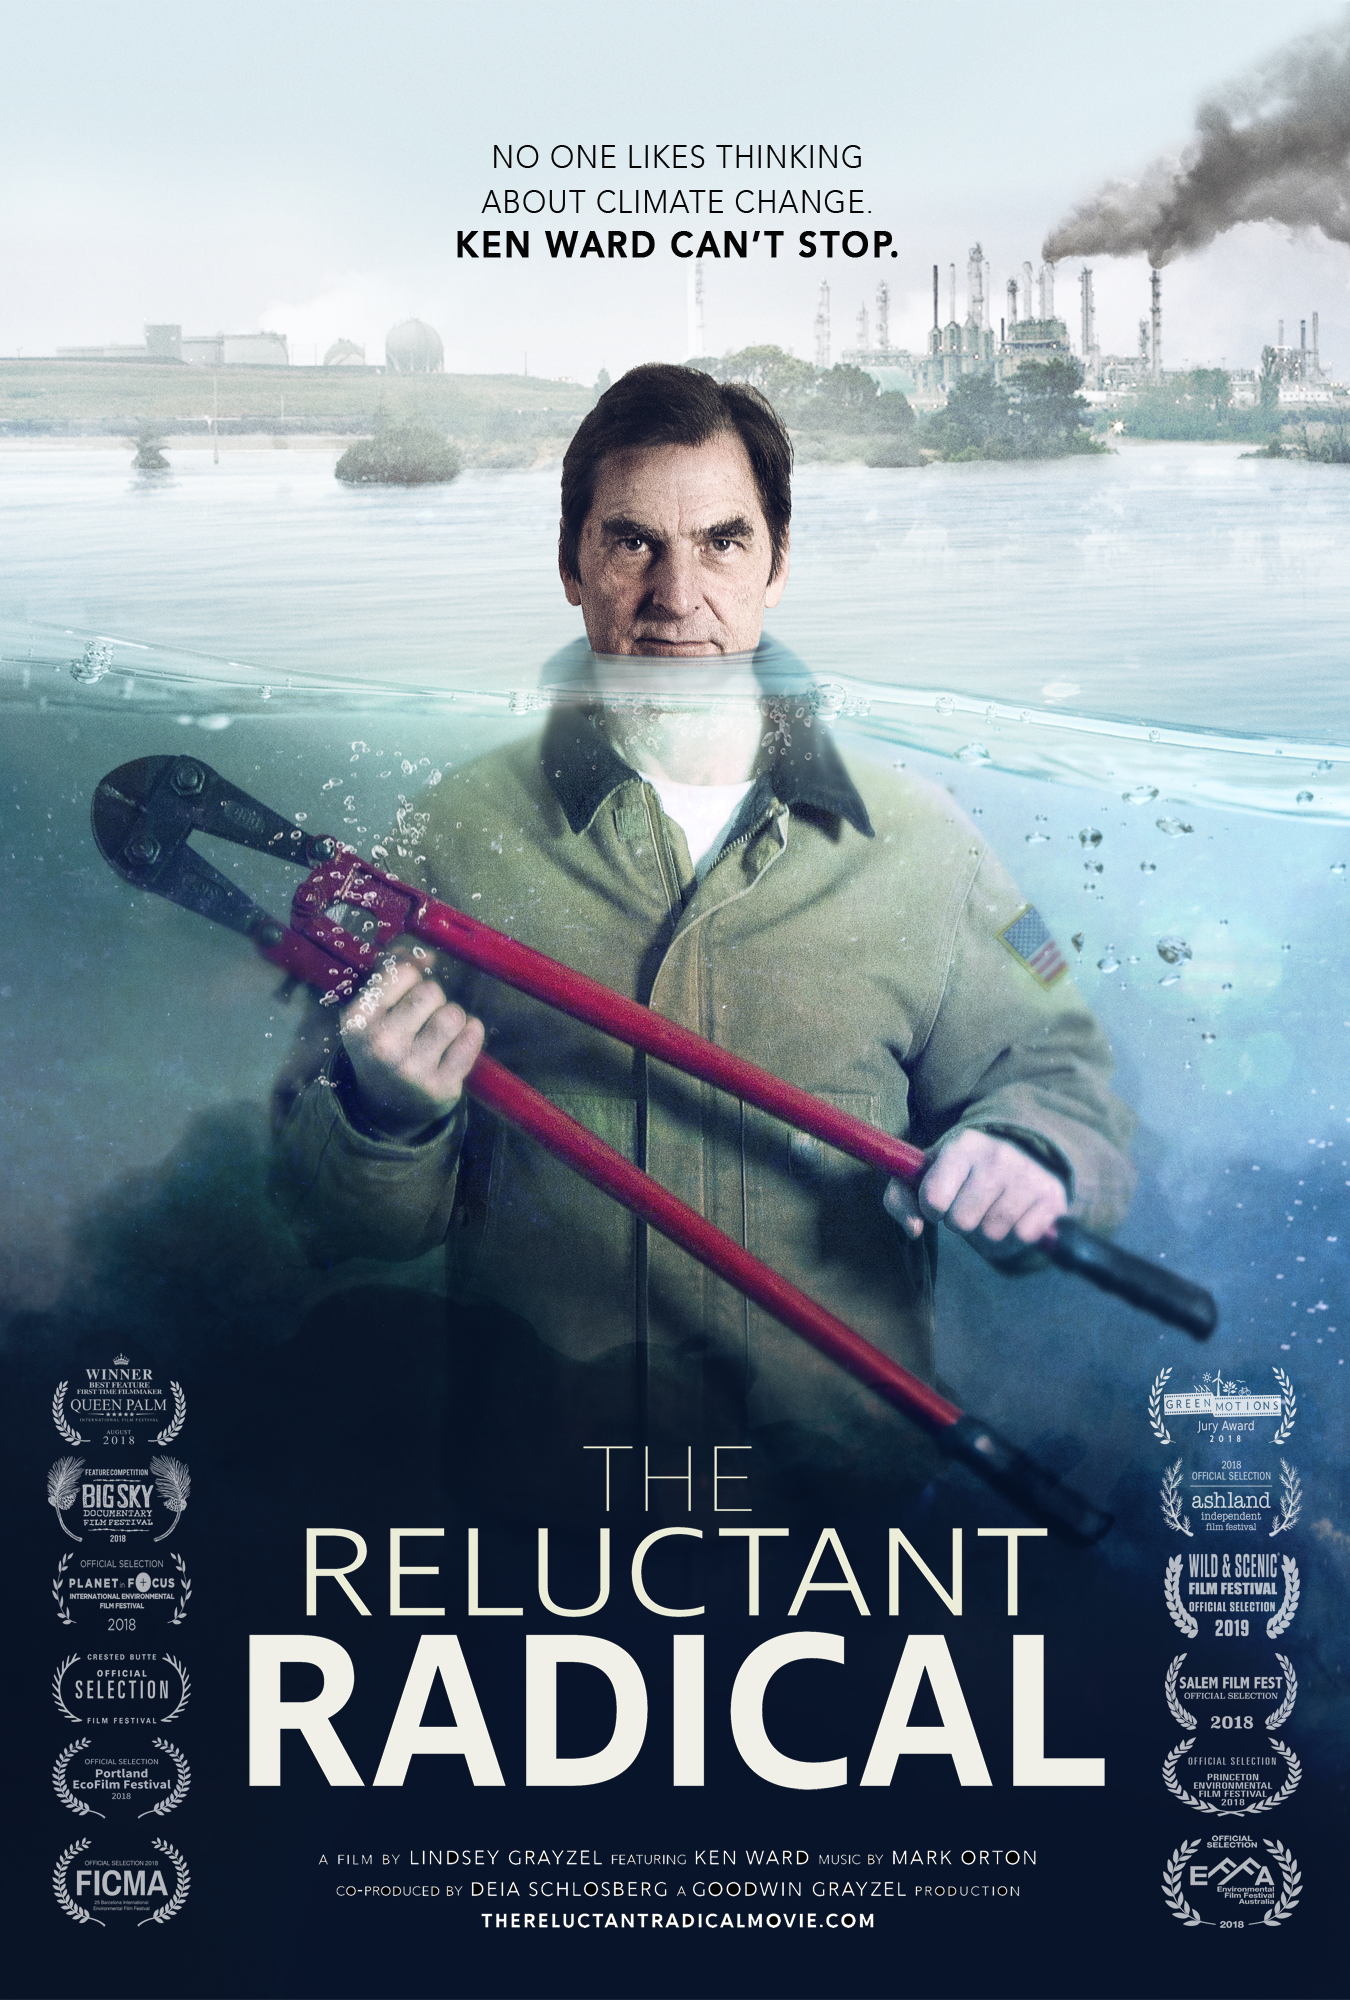 Outdoor Movie Night in Guildford: The Reluctant Radical